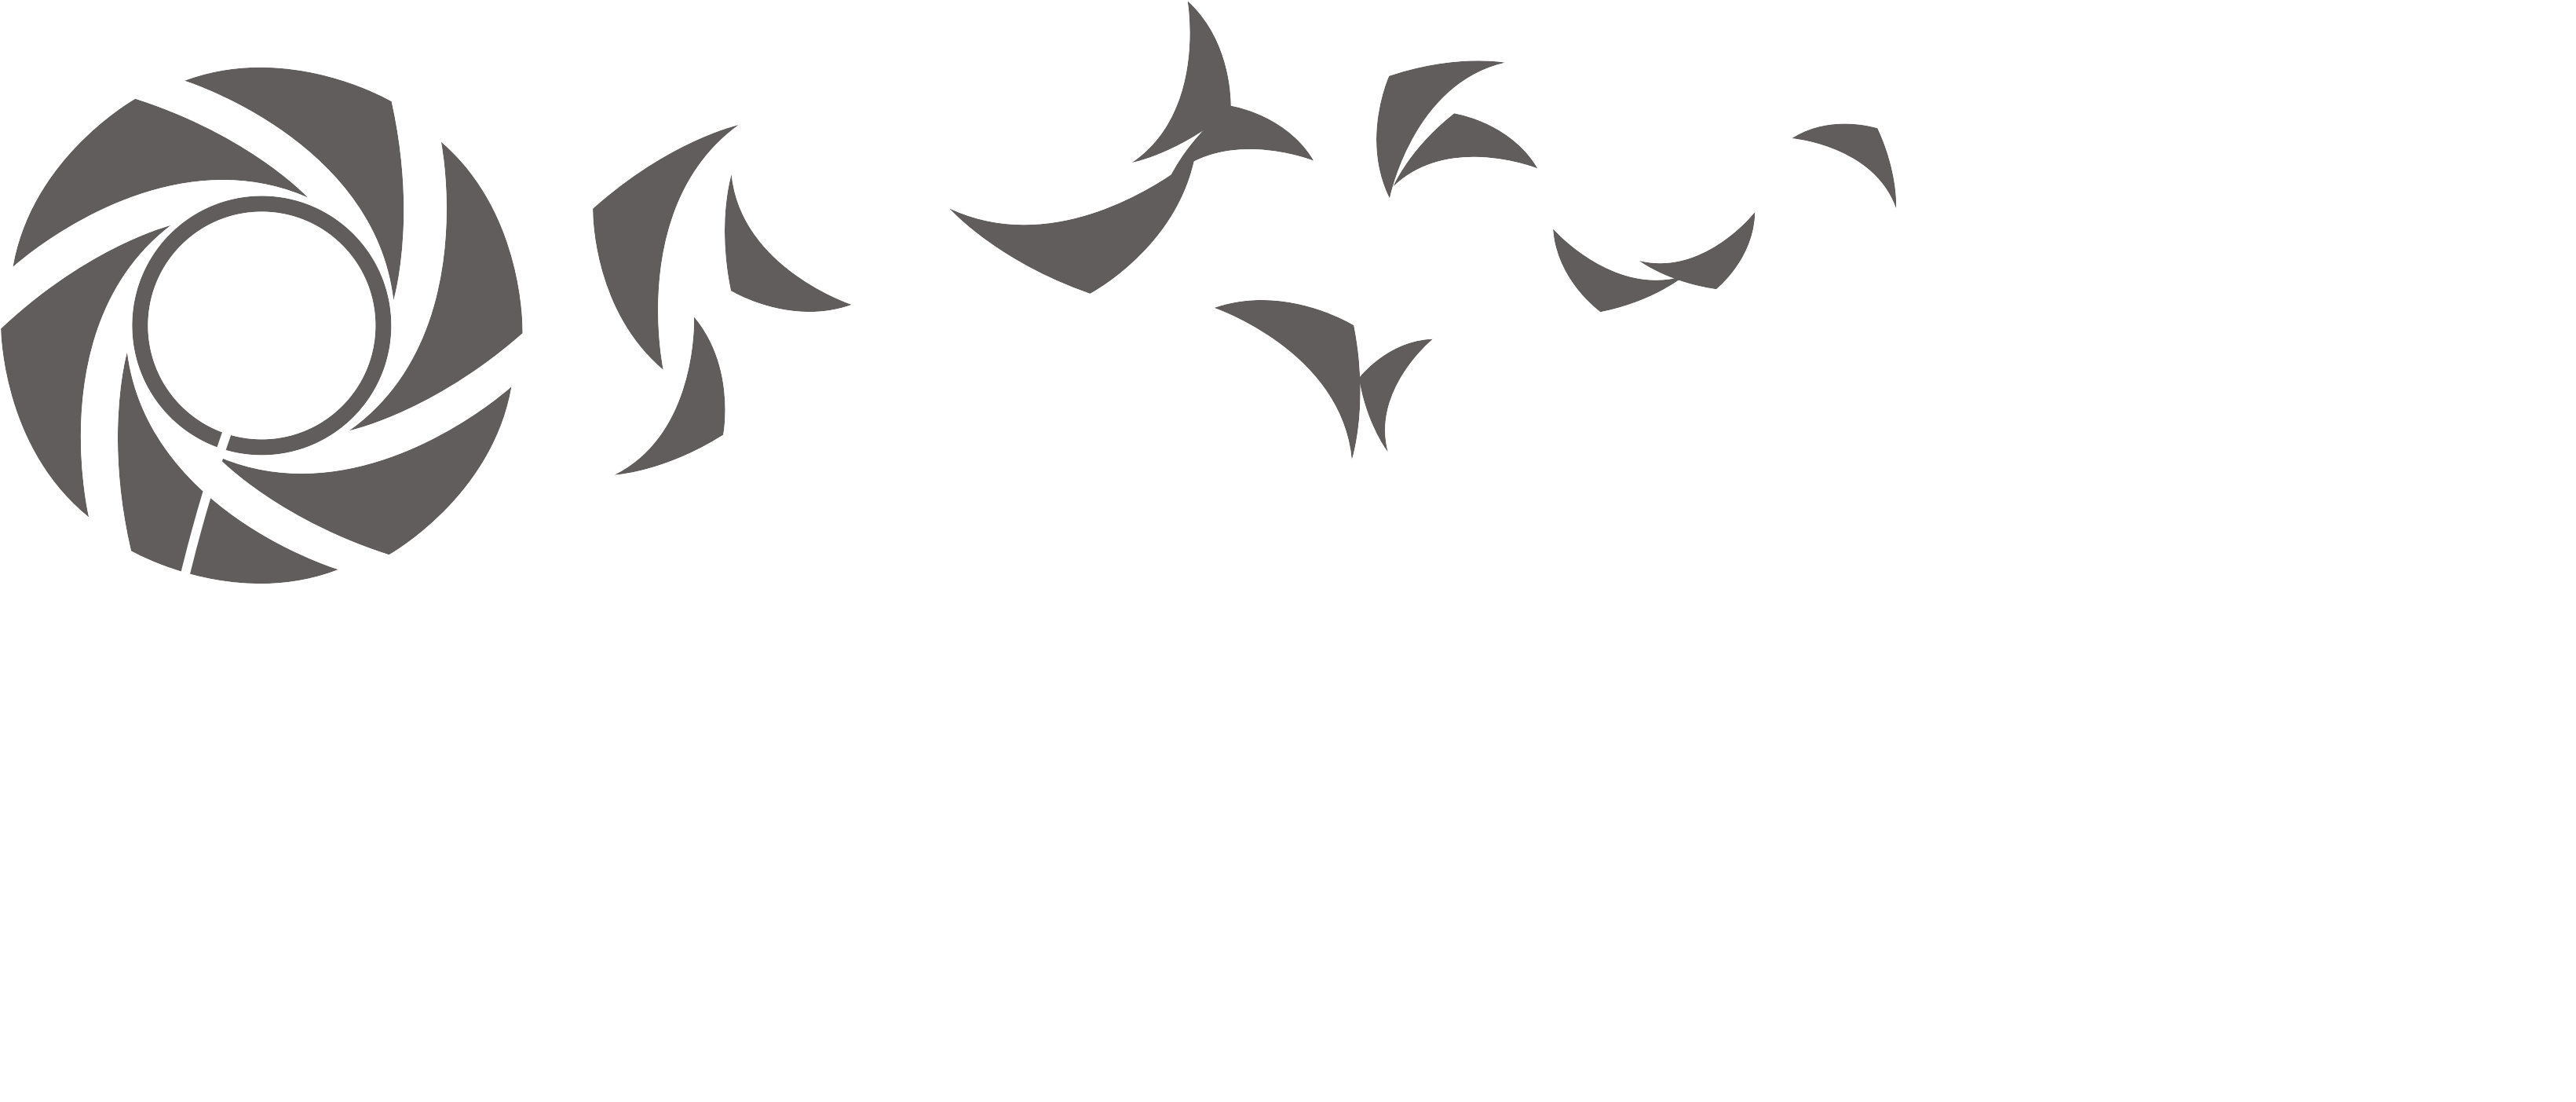 Download Png Logo Photography Library Photography Logo Png Transparent Png Image With No Background Pngkey Com